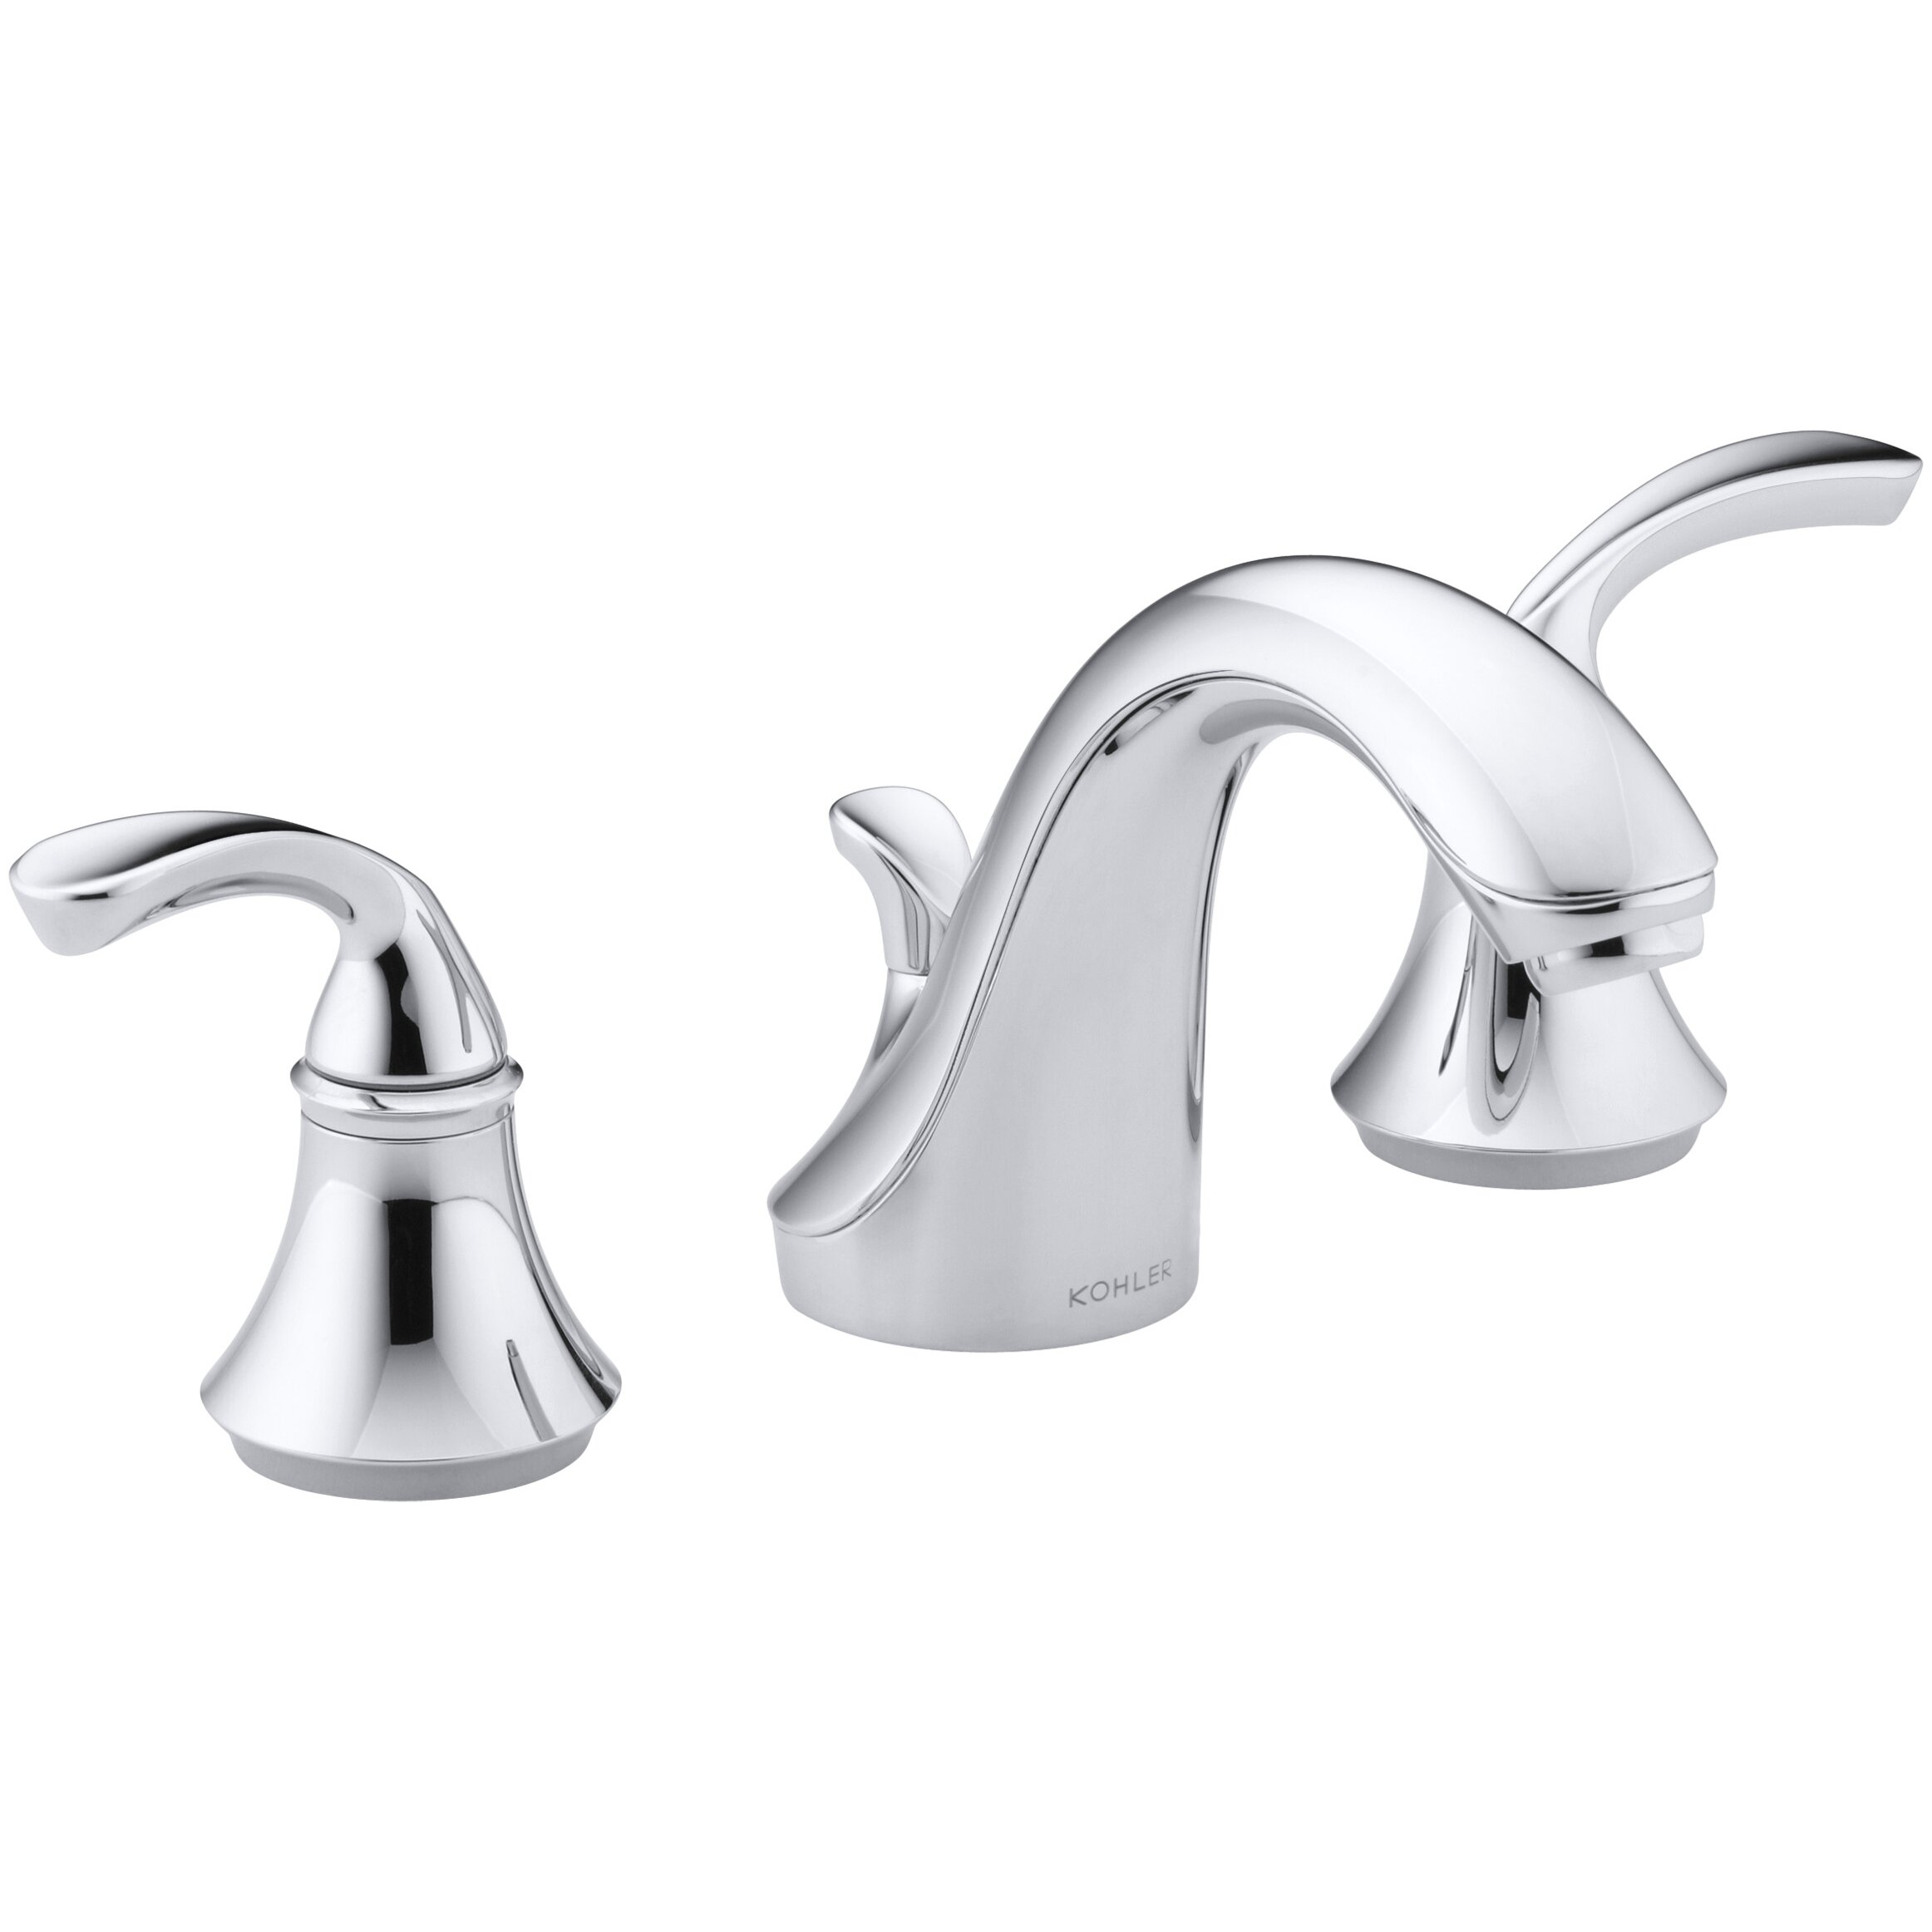 Kohler Faucet Reviews : ... Widespread Bathroom Sink Faucet with Sculpted Lever Handles by Kohler